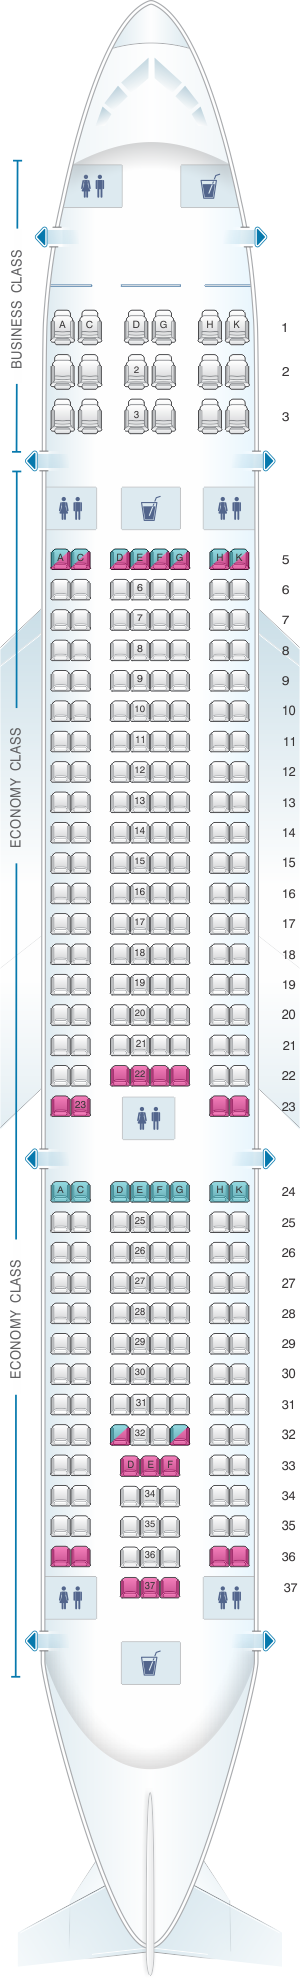 Seat map for Vietnam Airlines Airbus A330 200 269PAX